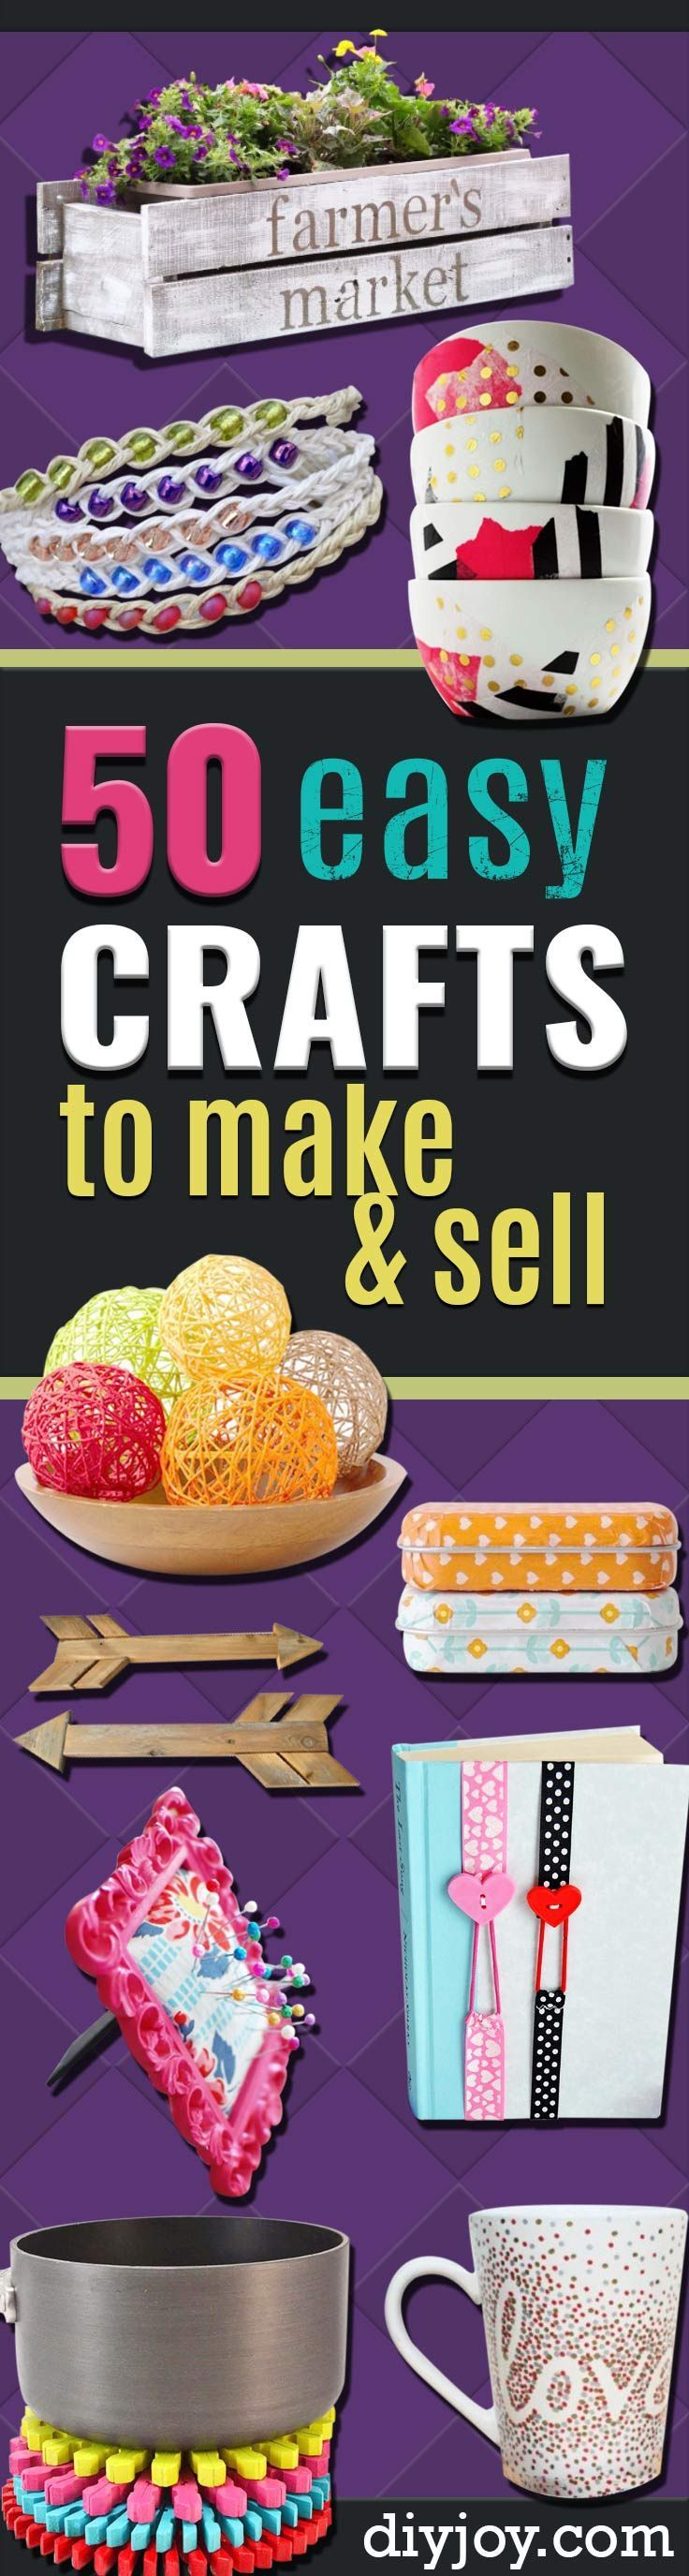 13 best crafts to make and sell images on pinterest crafts to make